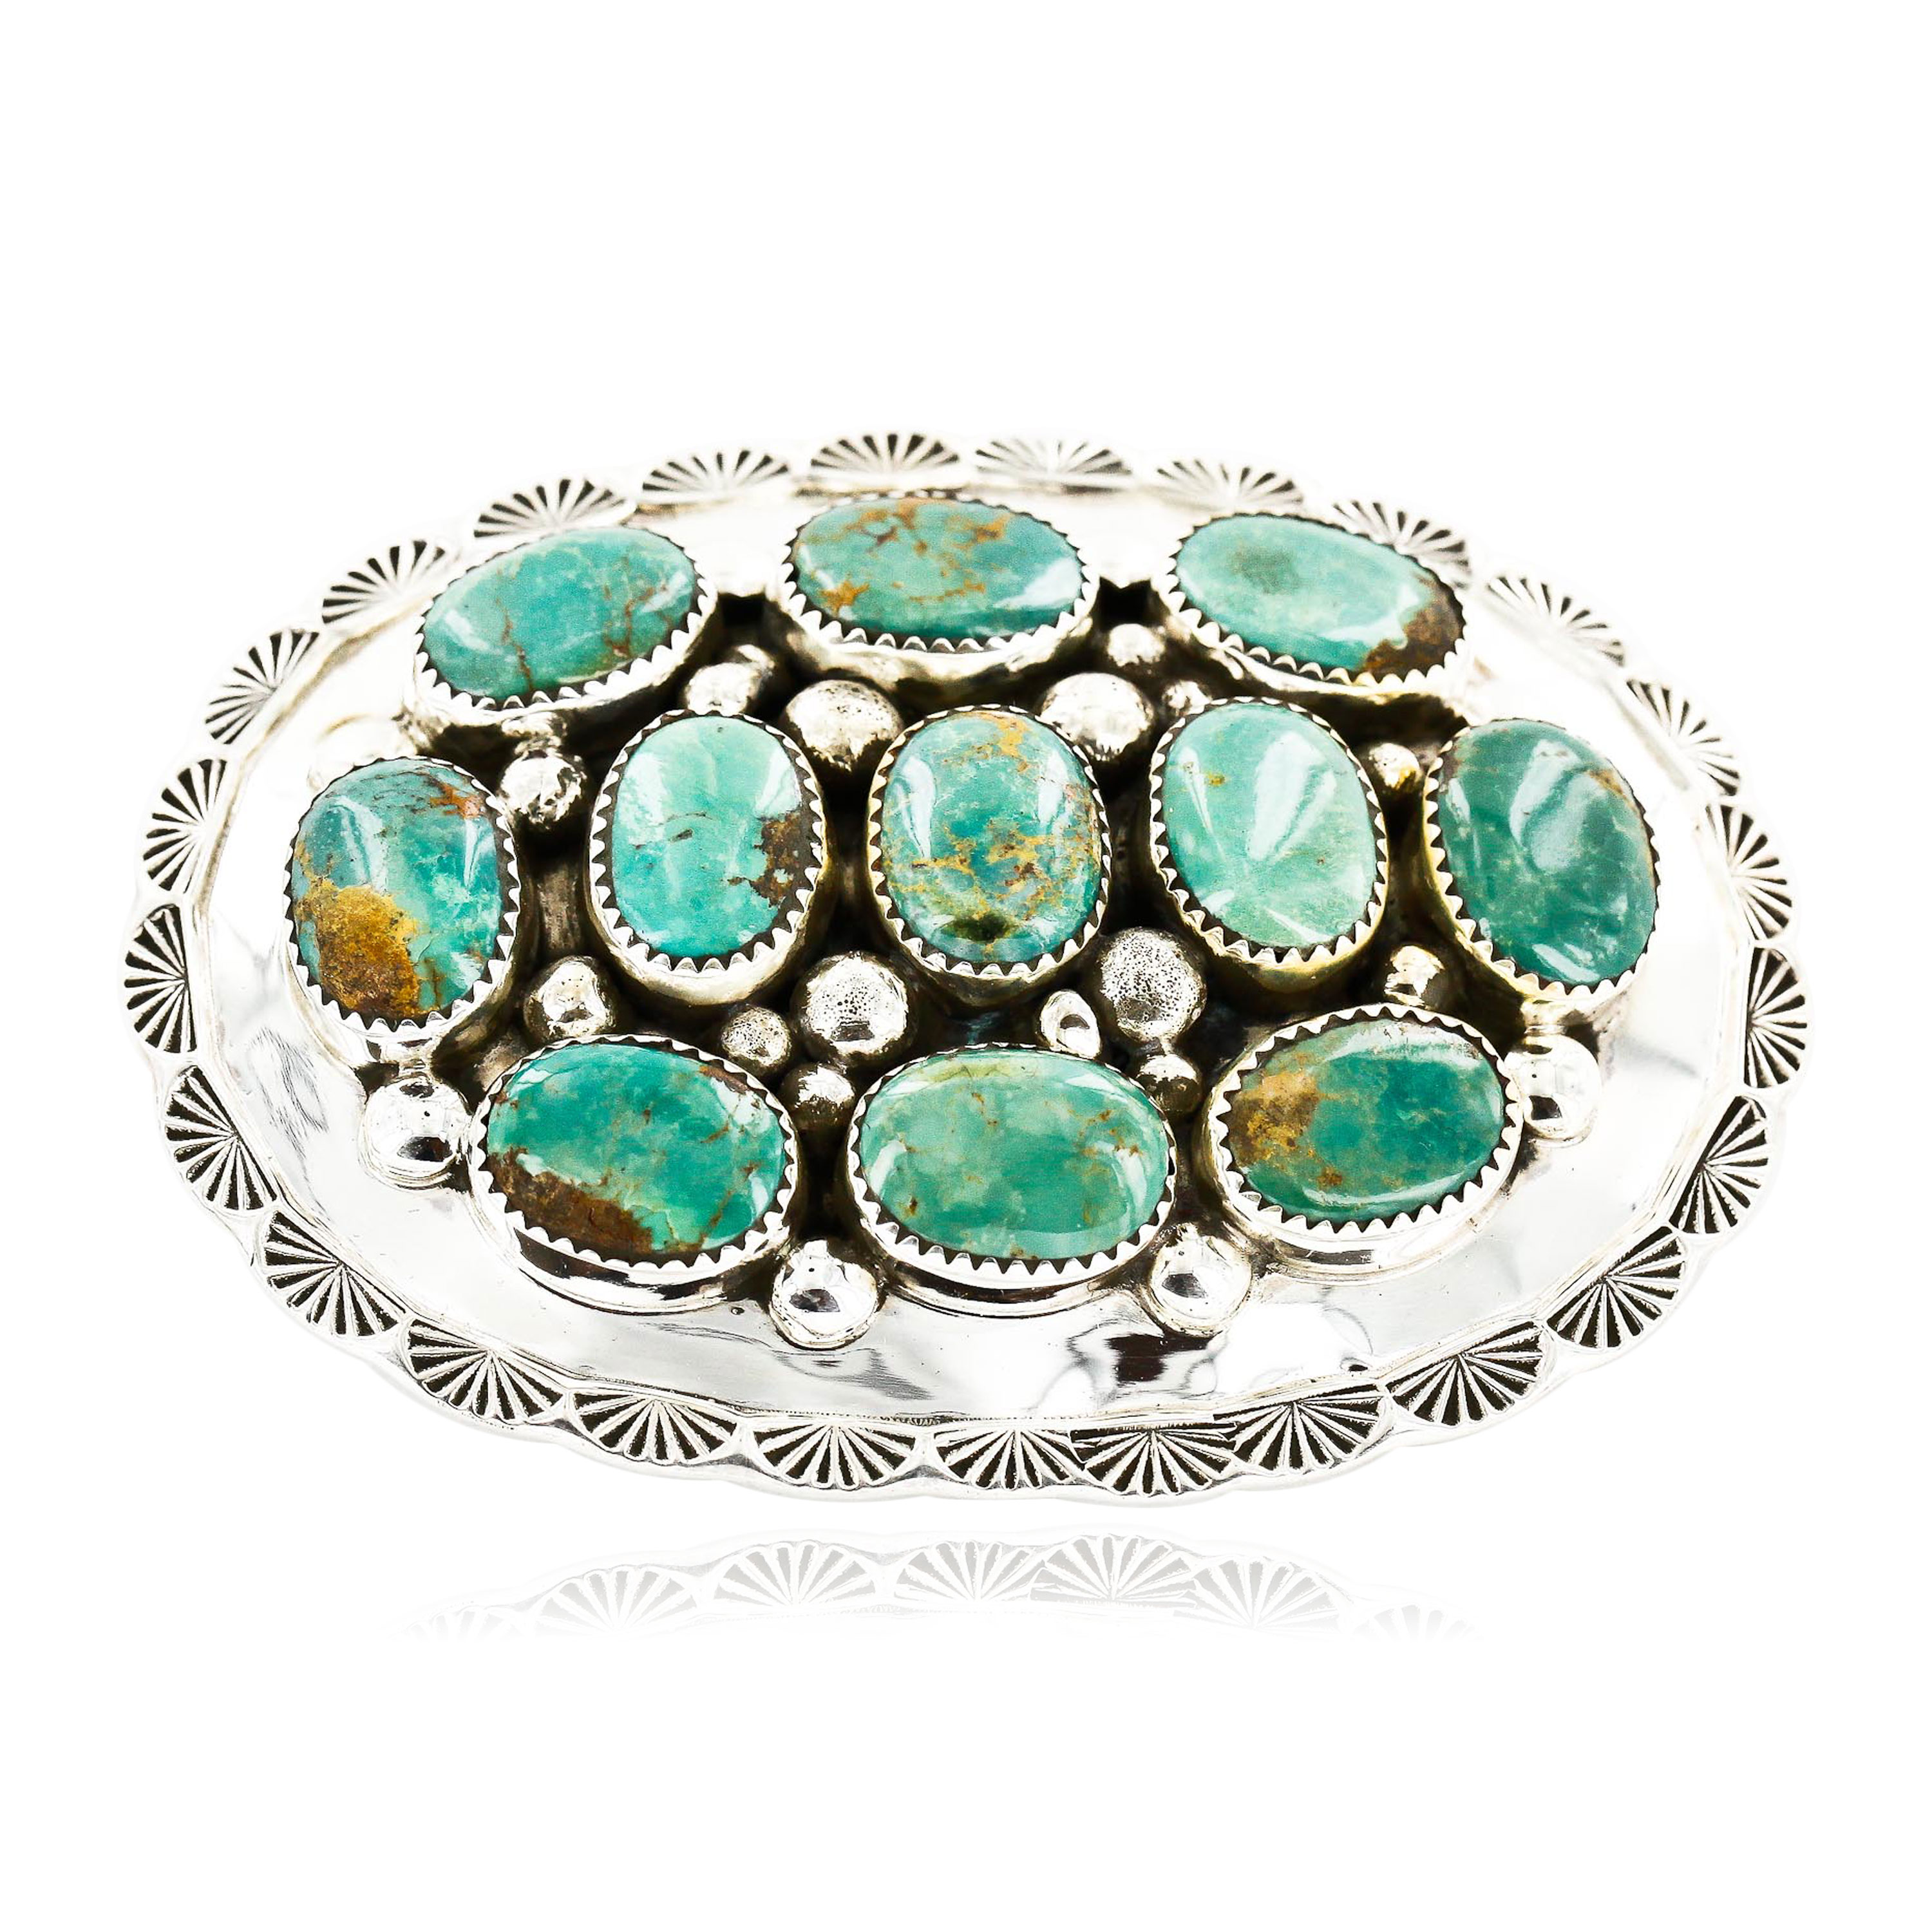 Certified Authentic Nuggets Navajo .925 Sterling Silver Natural Turquoise Native American Buckle 10527-1 All Products 391265130201 10527-1 (by LomaSiiva)